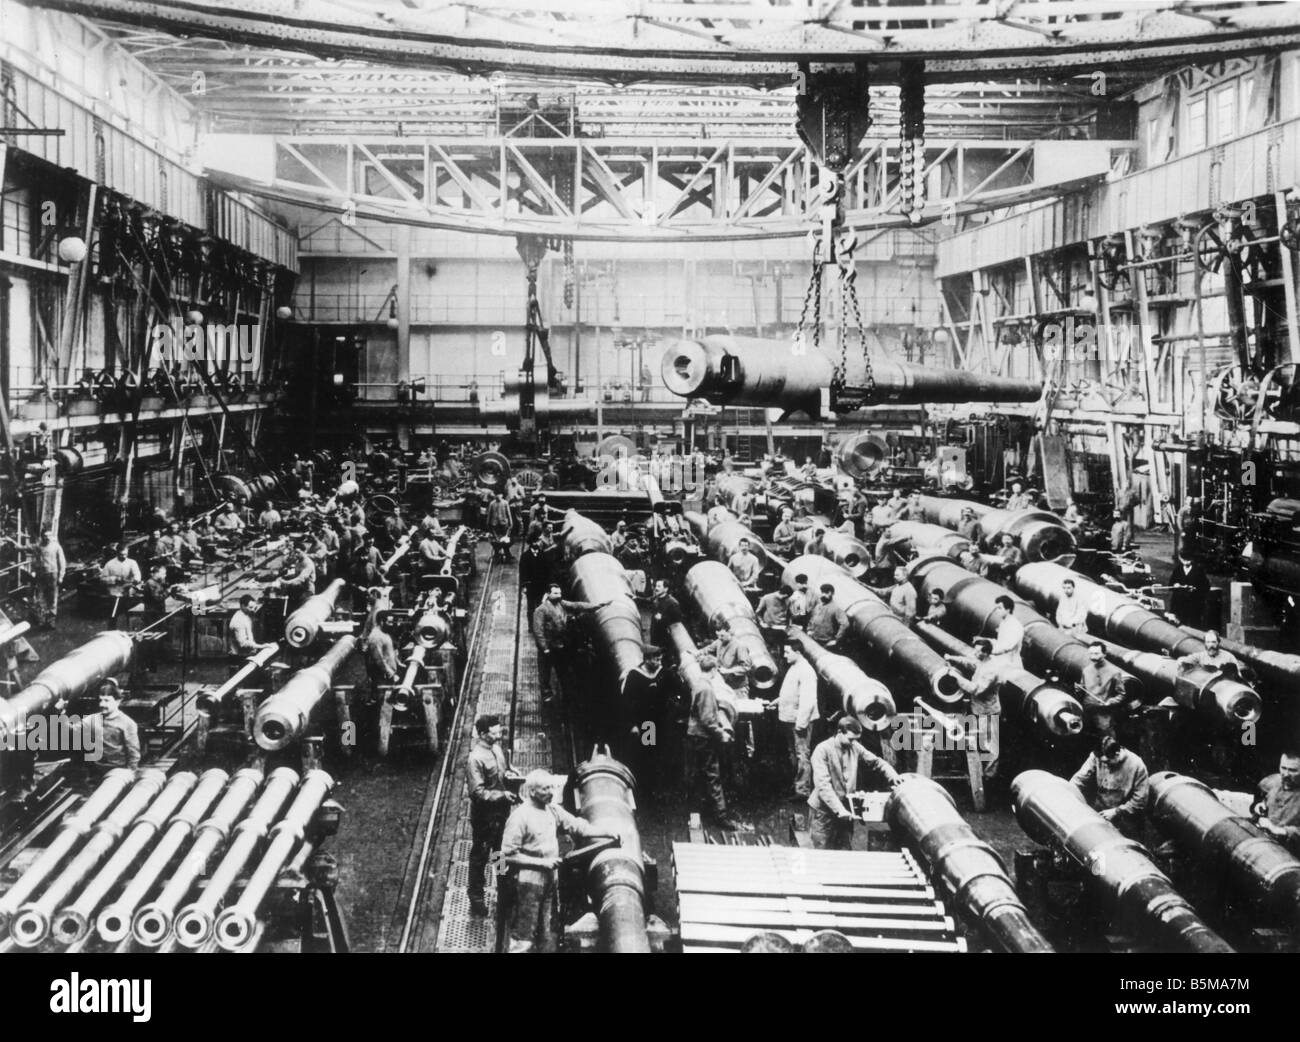 Krupp cannon factory WWI 1909 History World War I Arms industry Germany 1909 Cannon workshop V of the Krupp factory - Stock Image